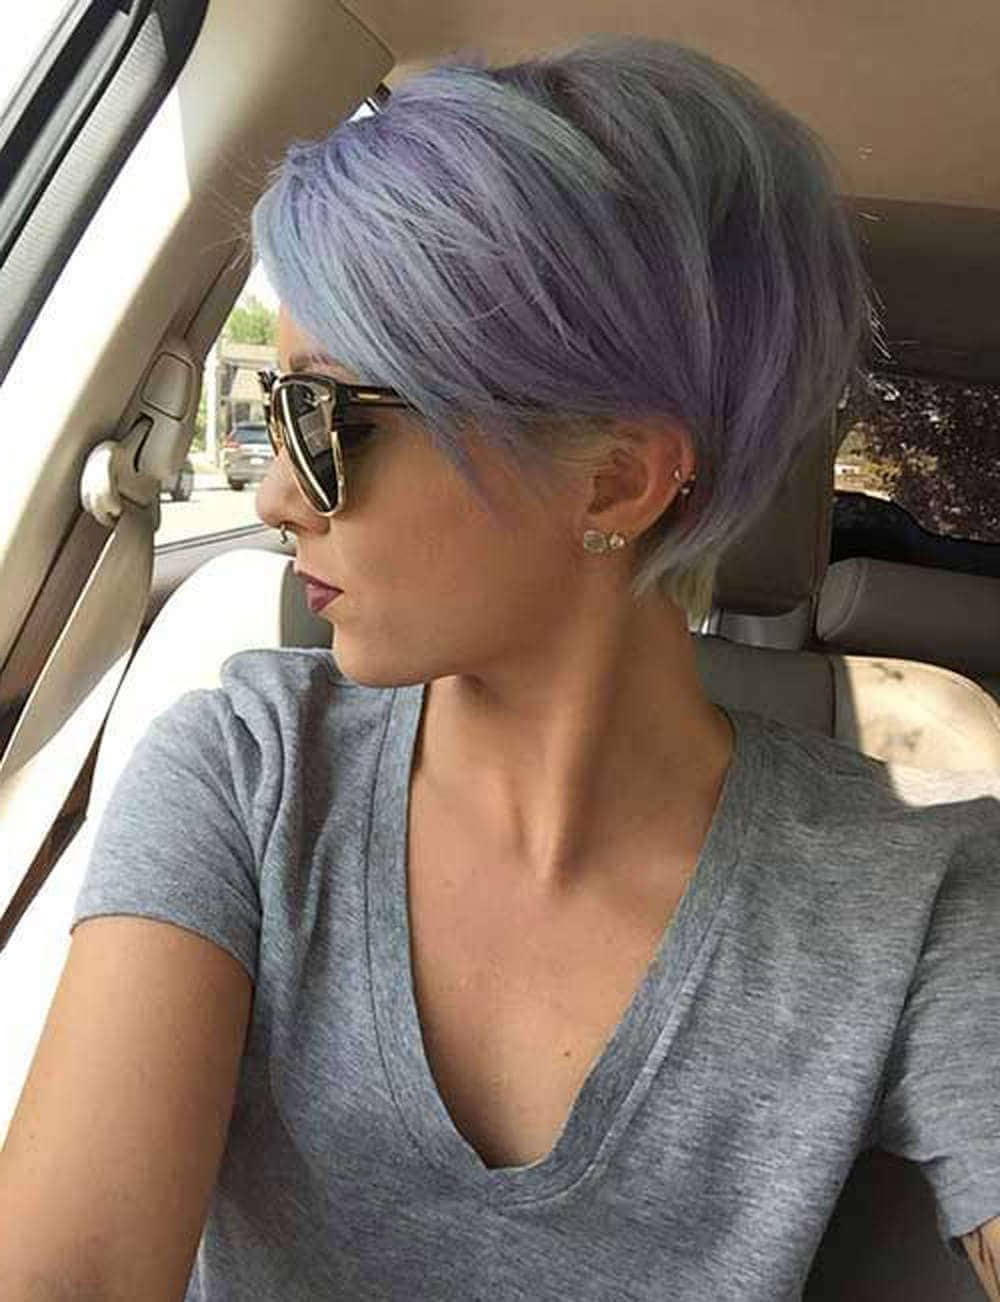 50 Pixie Haircuts You'll See Trending In 2018 Intended For Layered Pixie Hairstyles With An Edgy Fringe (View 11 of 20)